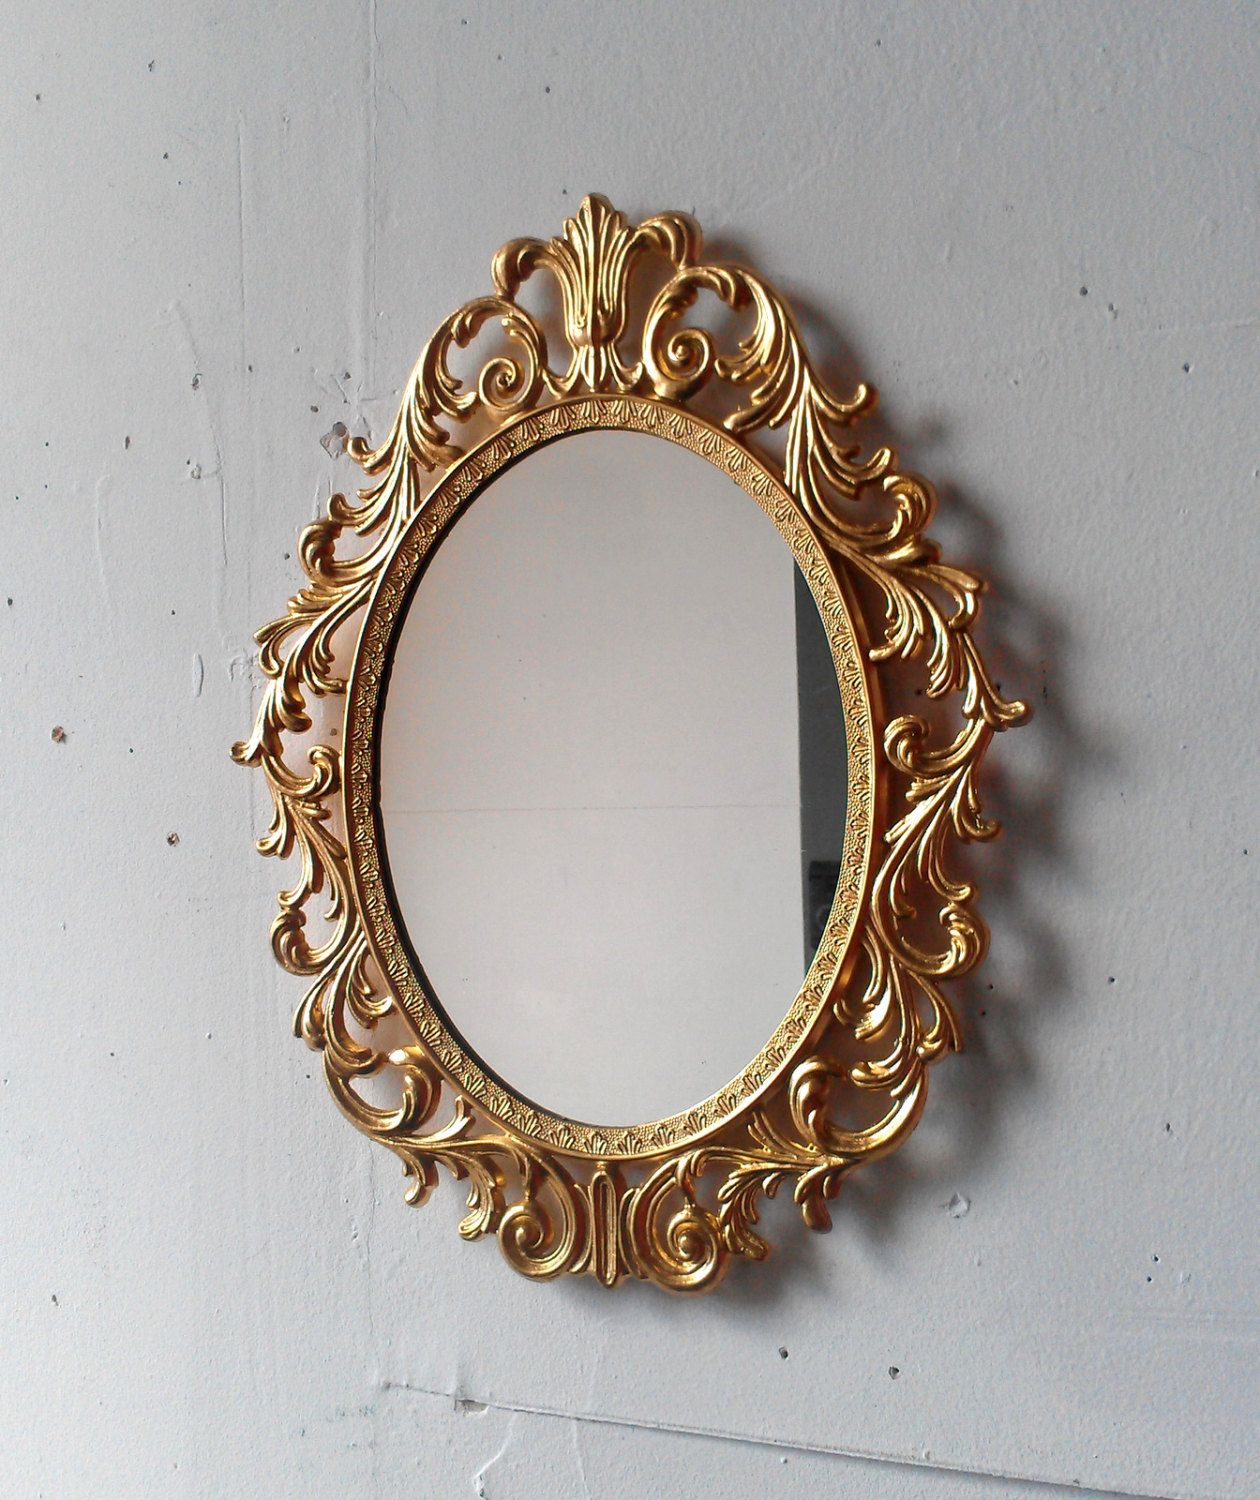 Fairy Princess Mirror Ornate Vintage Frame In Shiny Gold Etsy Vintage Gold Mirror Vintage Brass Frame Gold Ornate Mirror